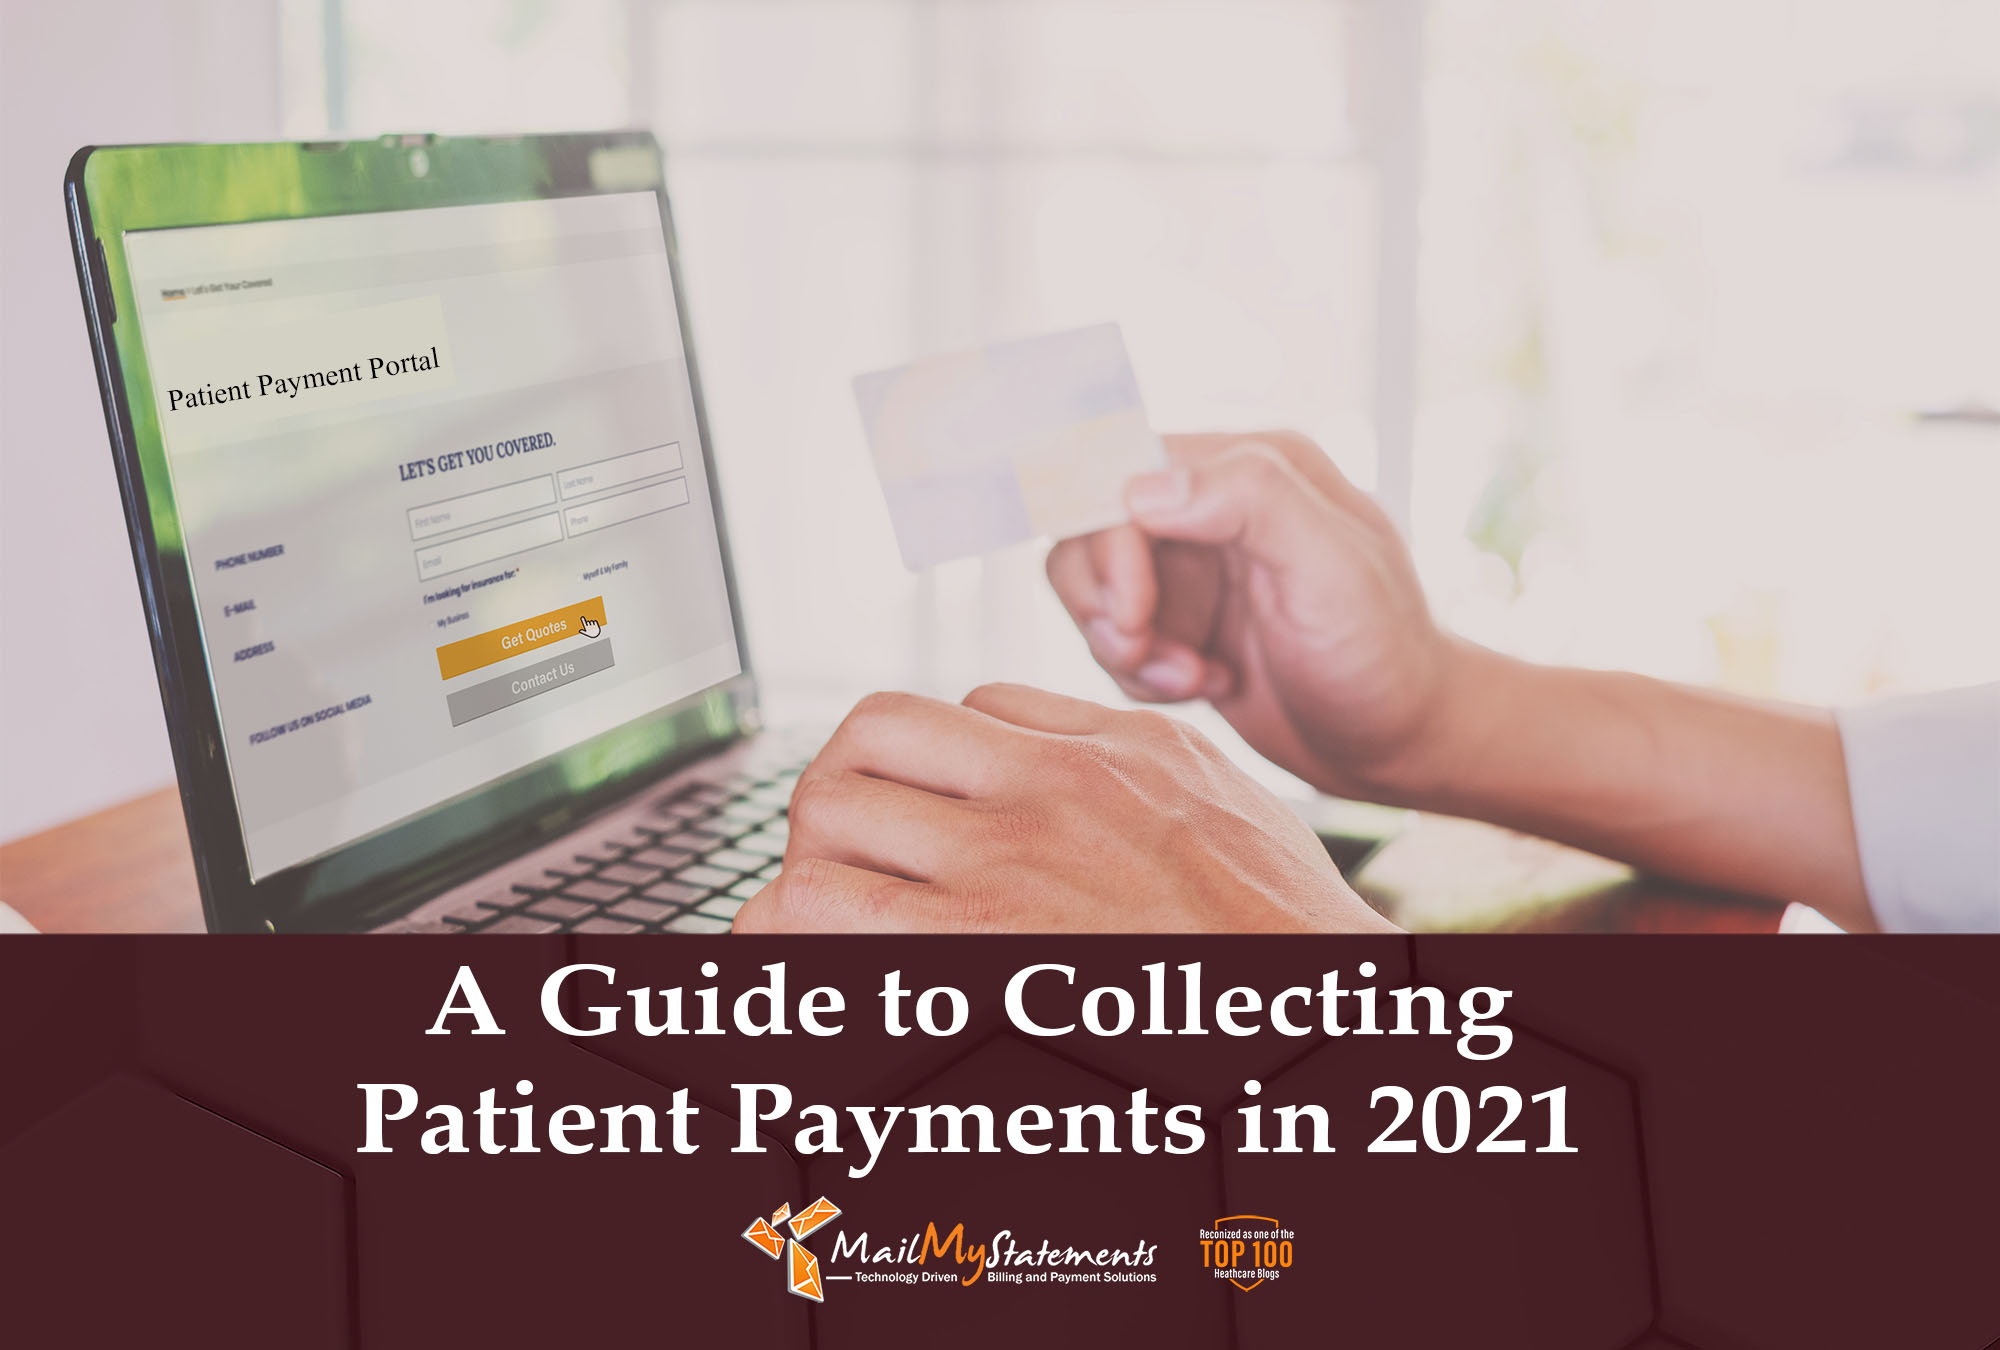 A Guide to Collecting Patient Payments in 2021